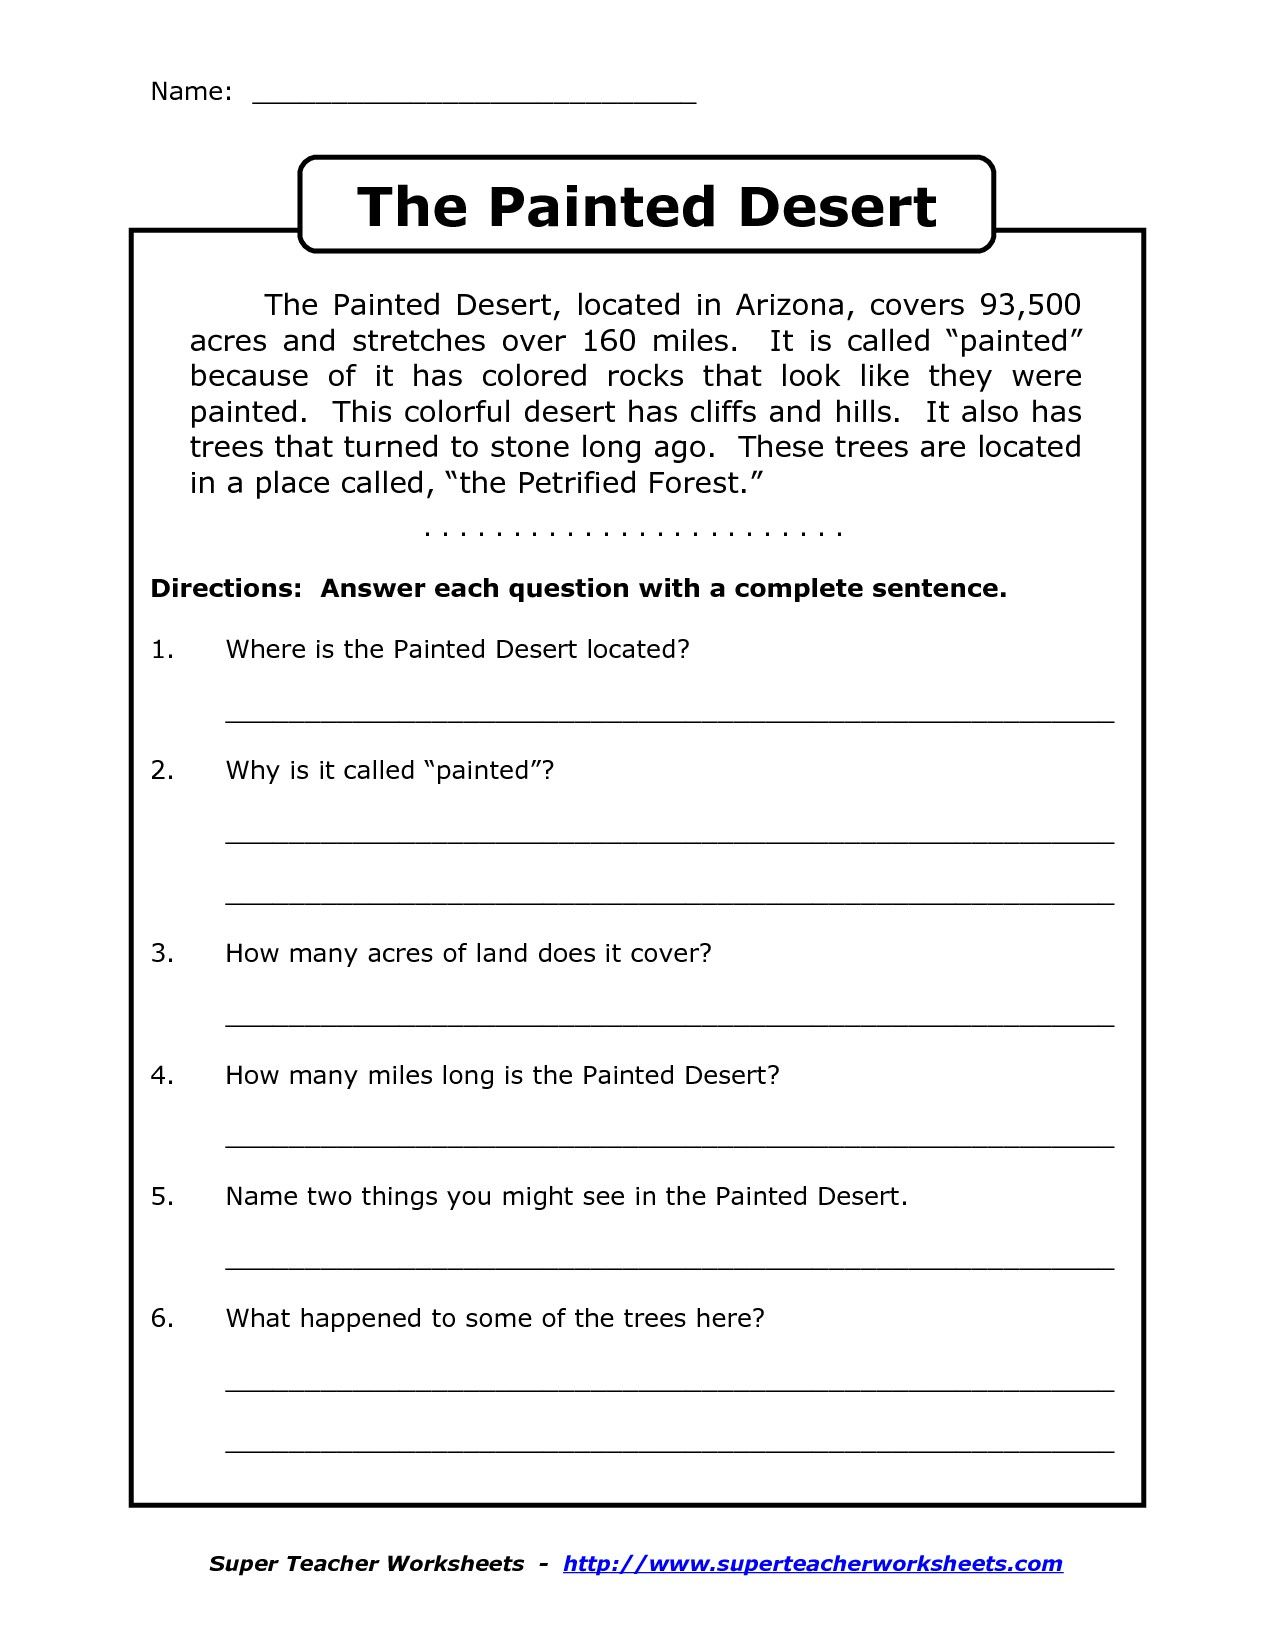 Worksheets 3rd Grade Reading Comprehension Worksheet comprehension worksheet for 1st grade y2p3 the painted desert arizona